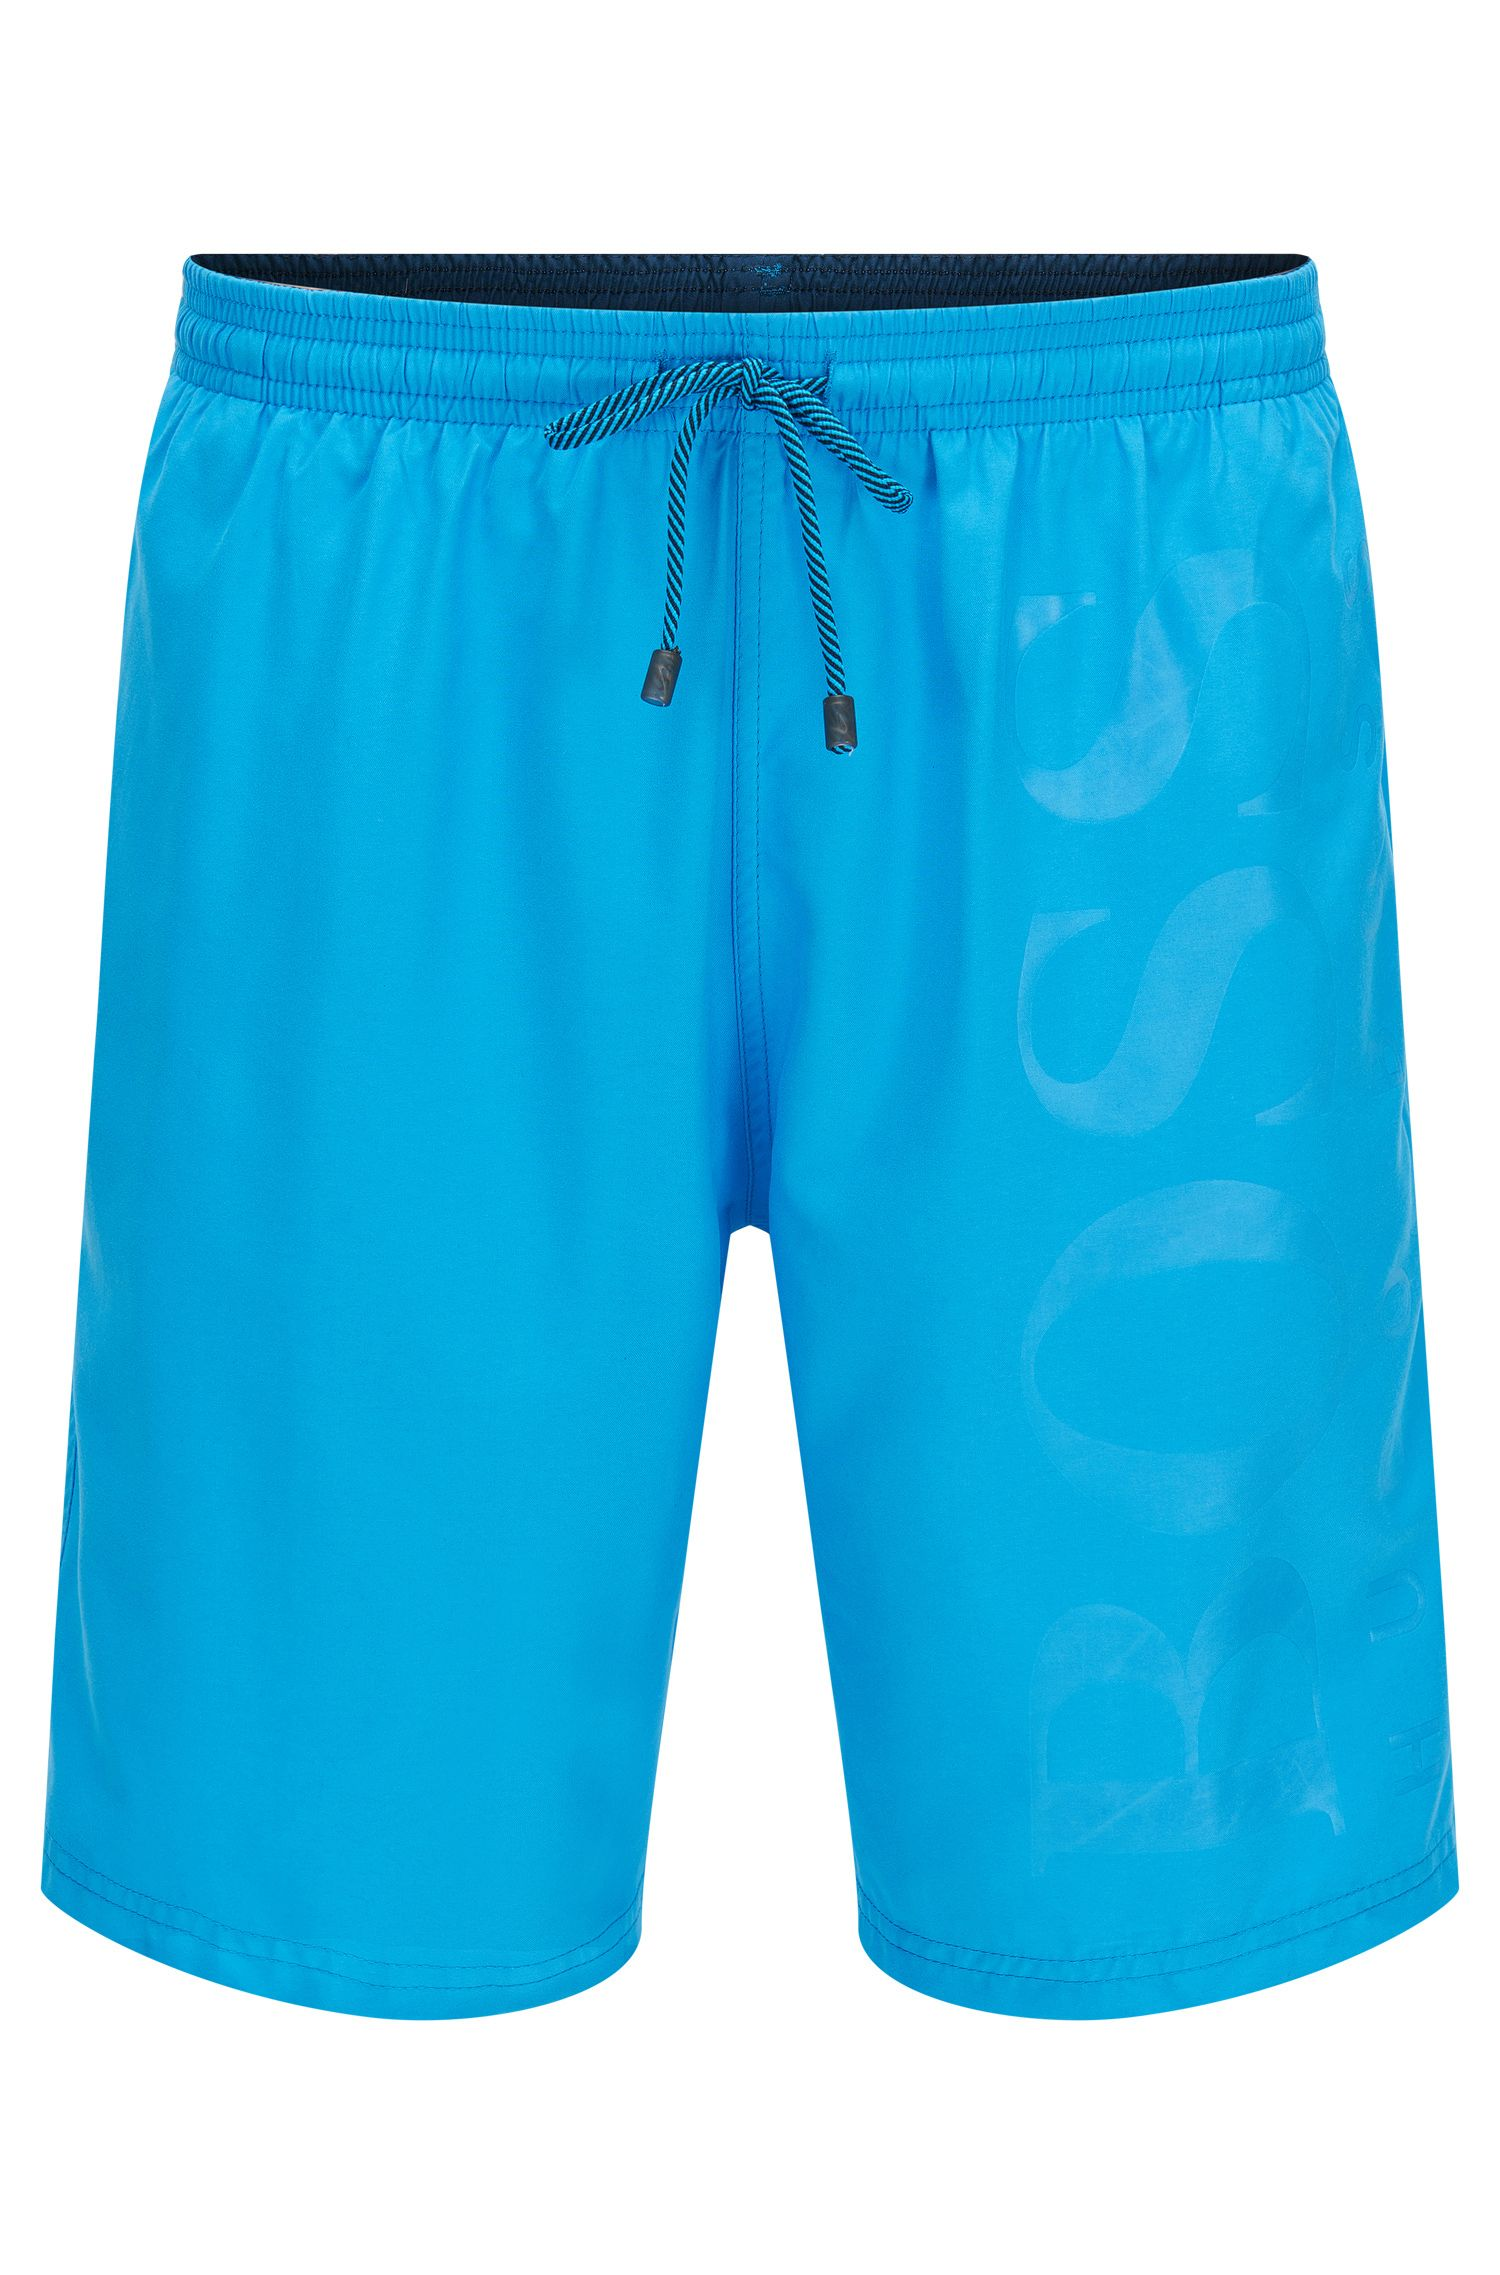 Swim shorts in brushed technical fabric